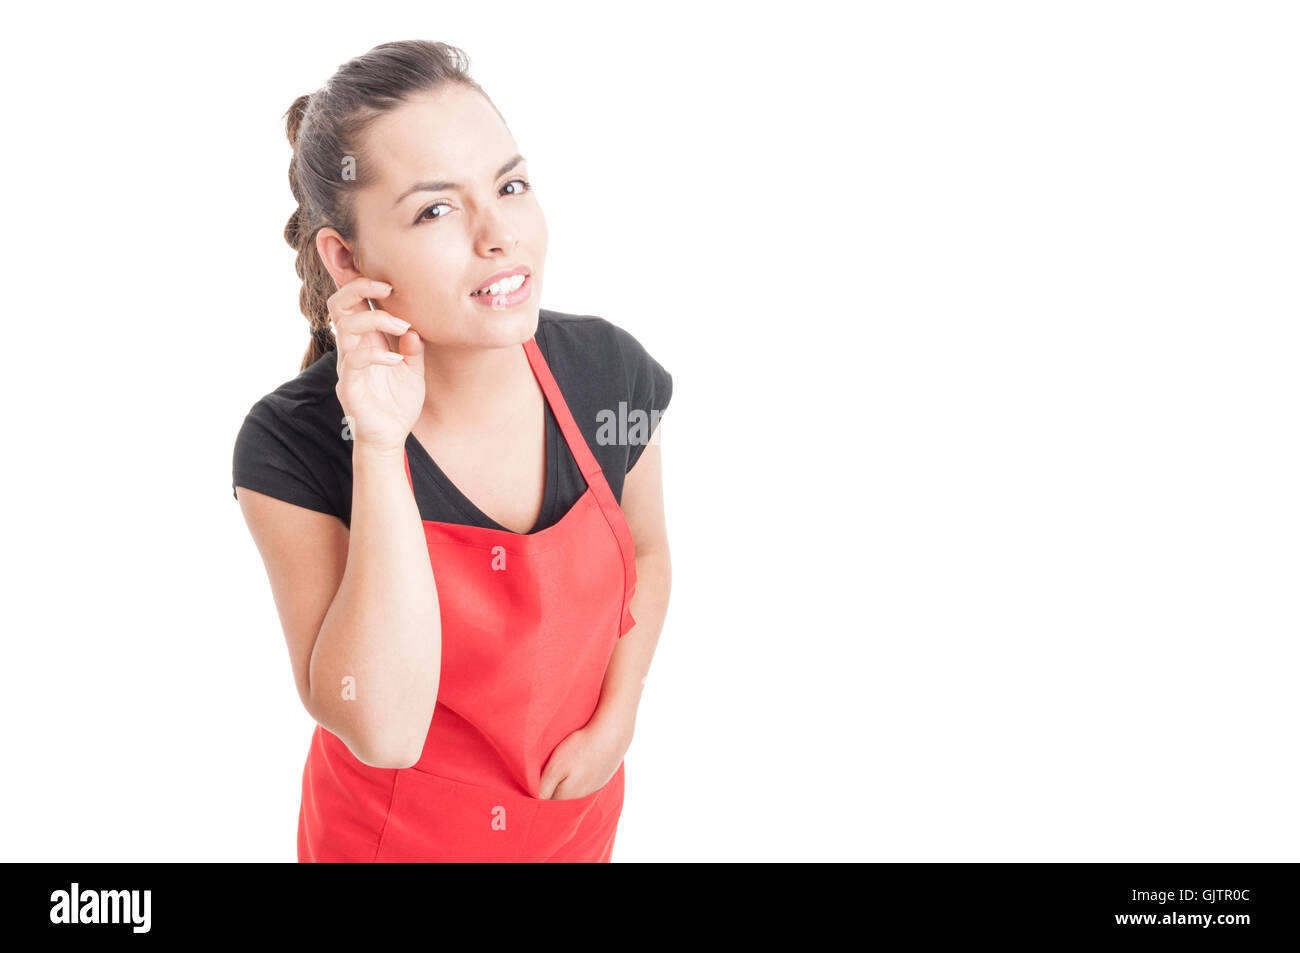 Curious woman employee listening whisper or gossip isolated on white background with copy space area - Stock Image